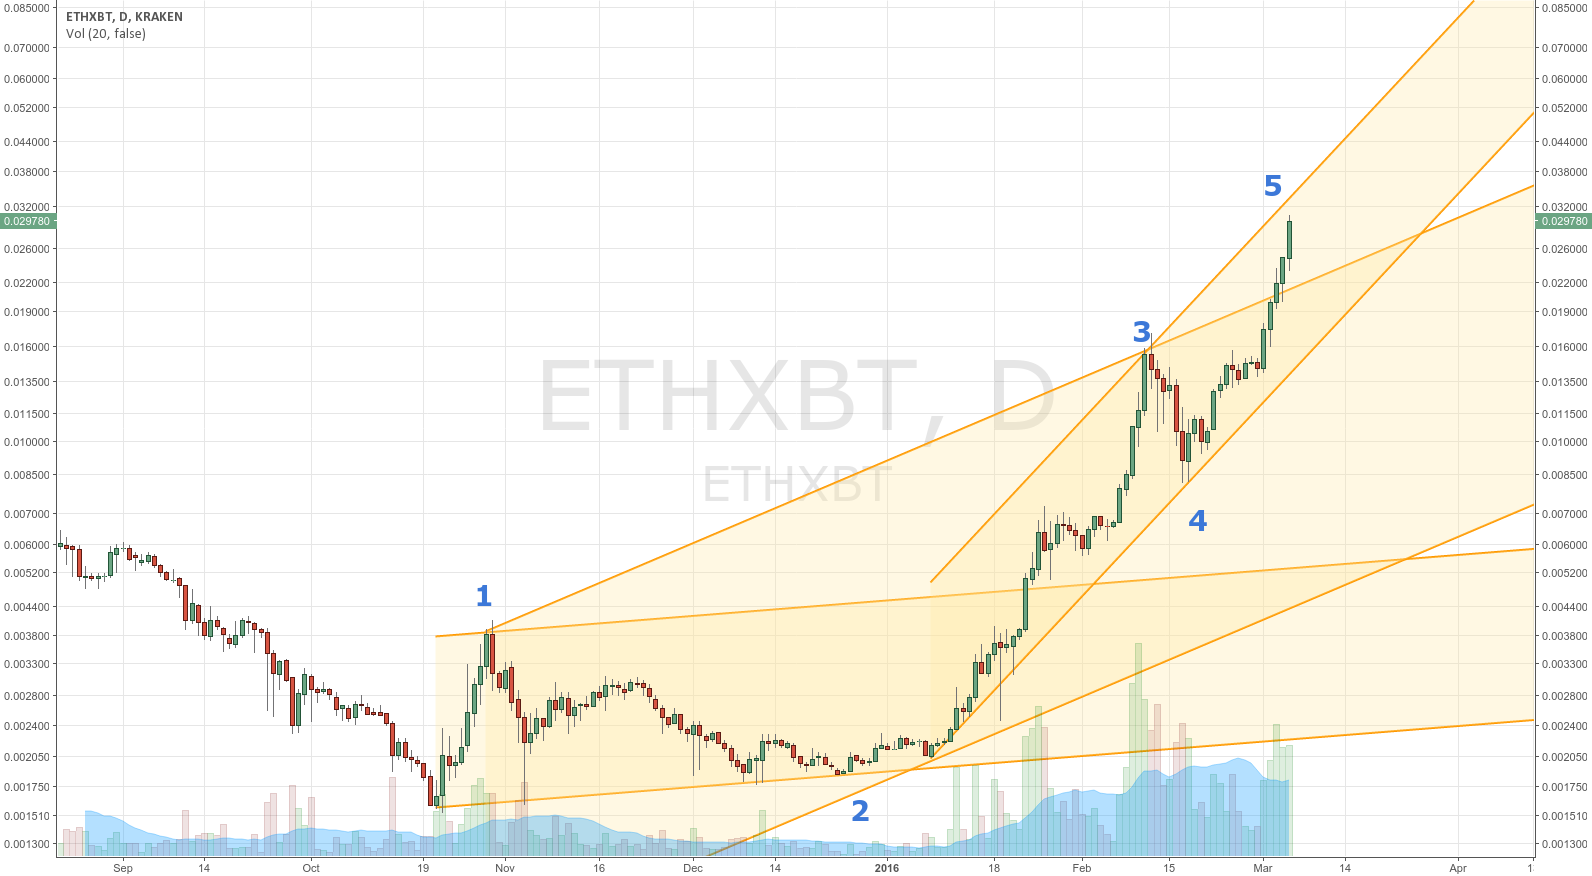 ETH likely to be topping soon